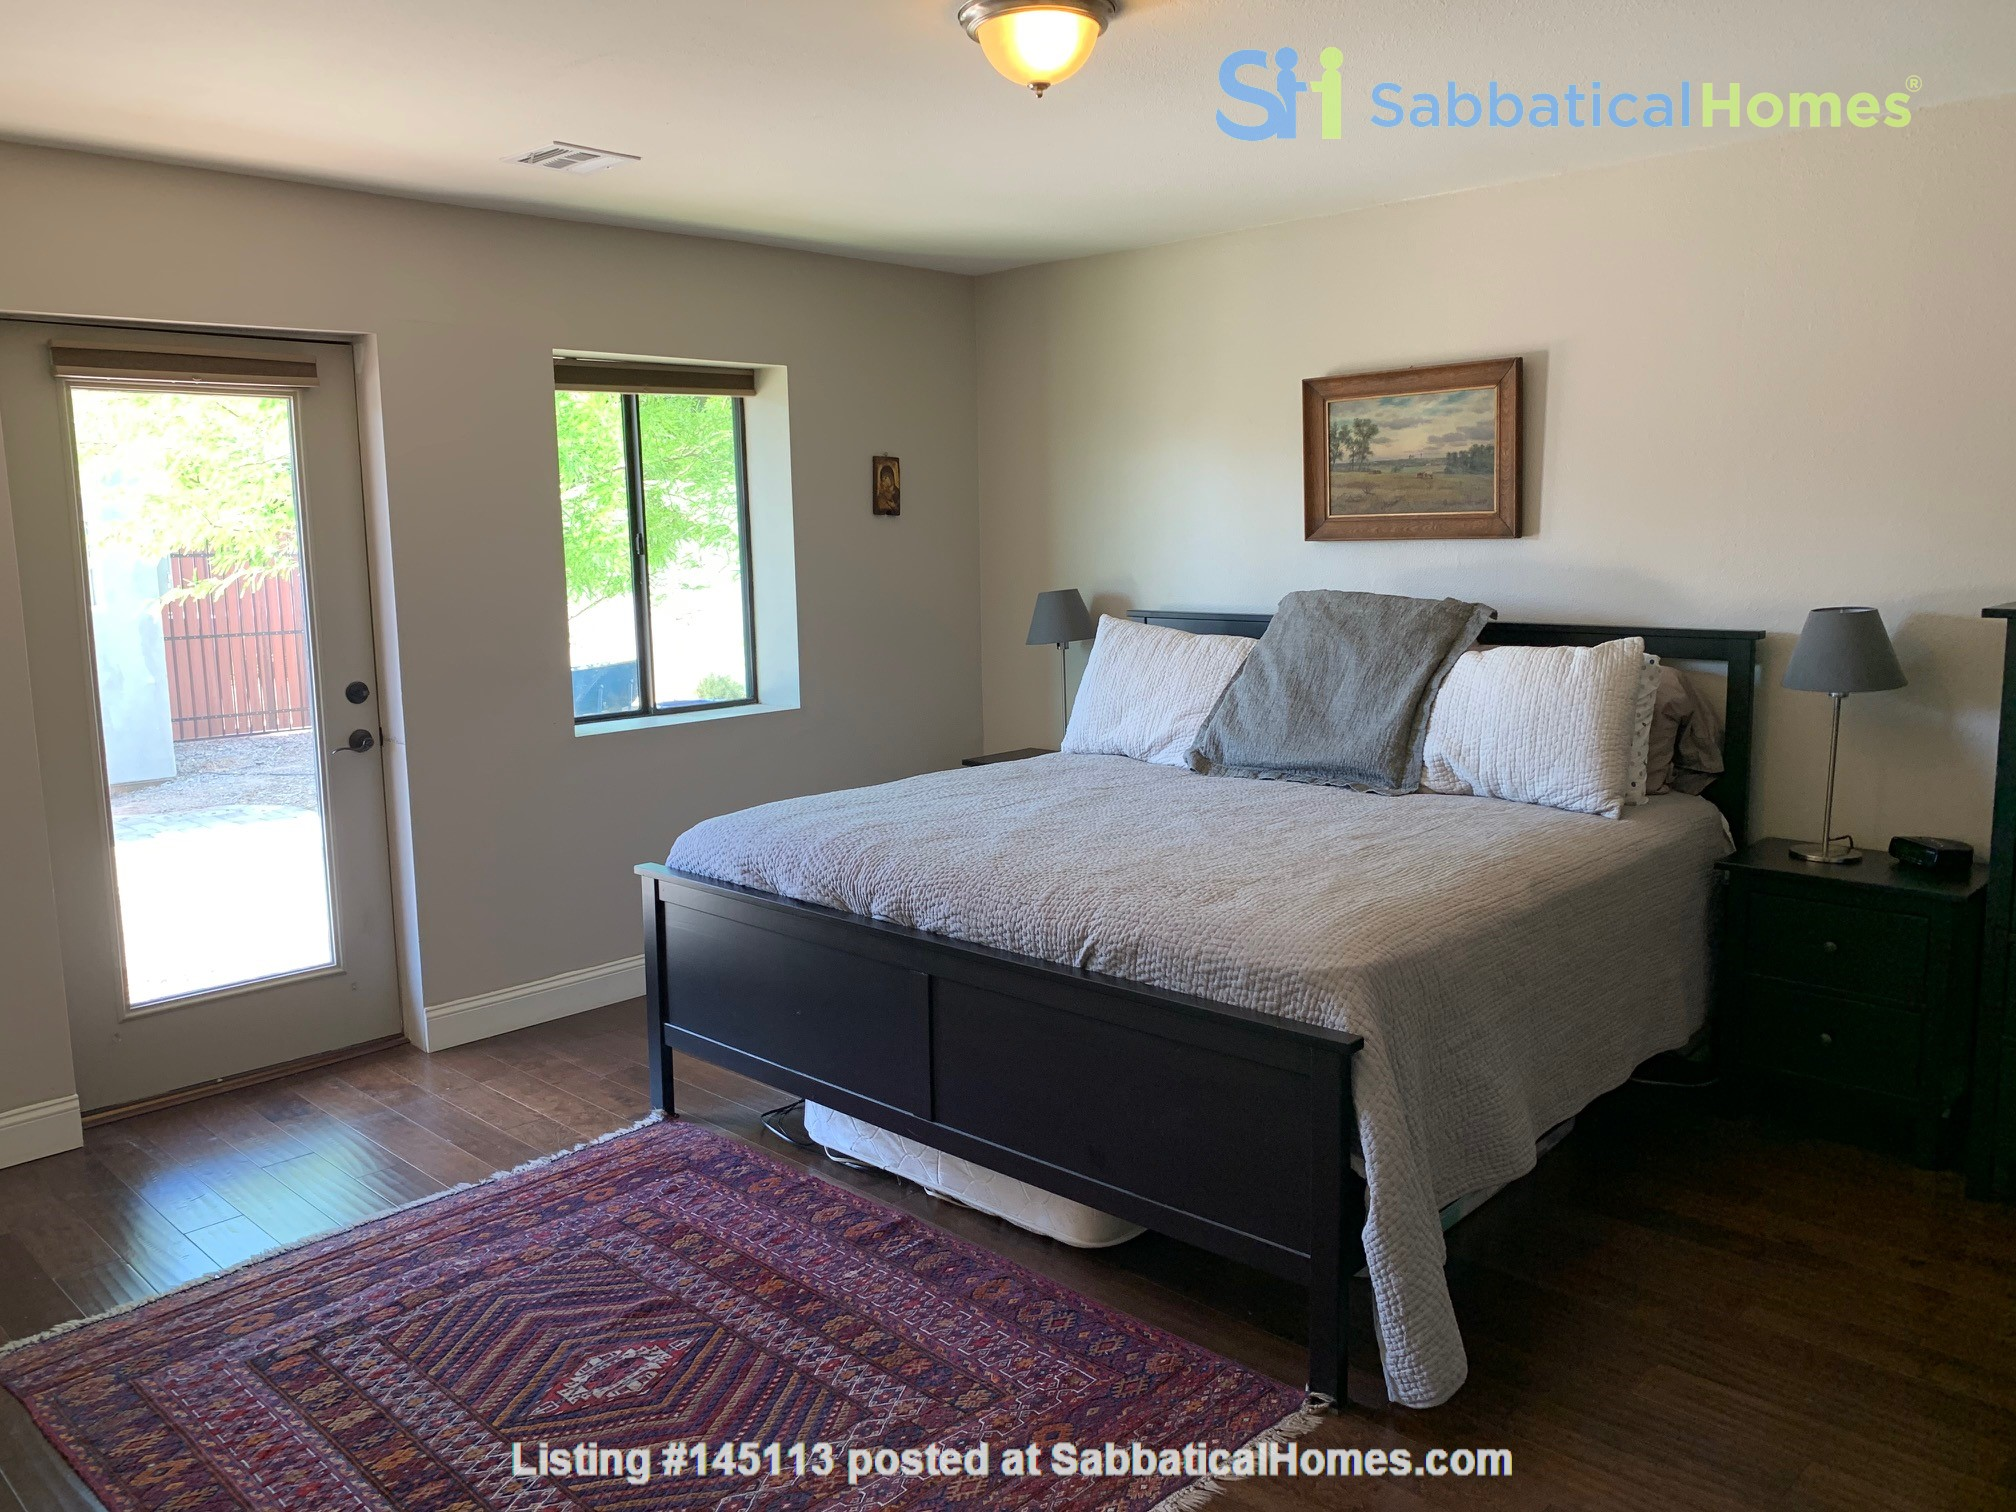 Modern family home 3 miles from ASU, 6 miles from Intel campus Home Rental in Tempe, Arizona, United States 6